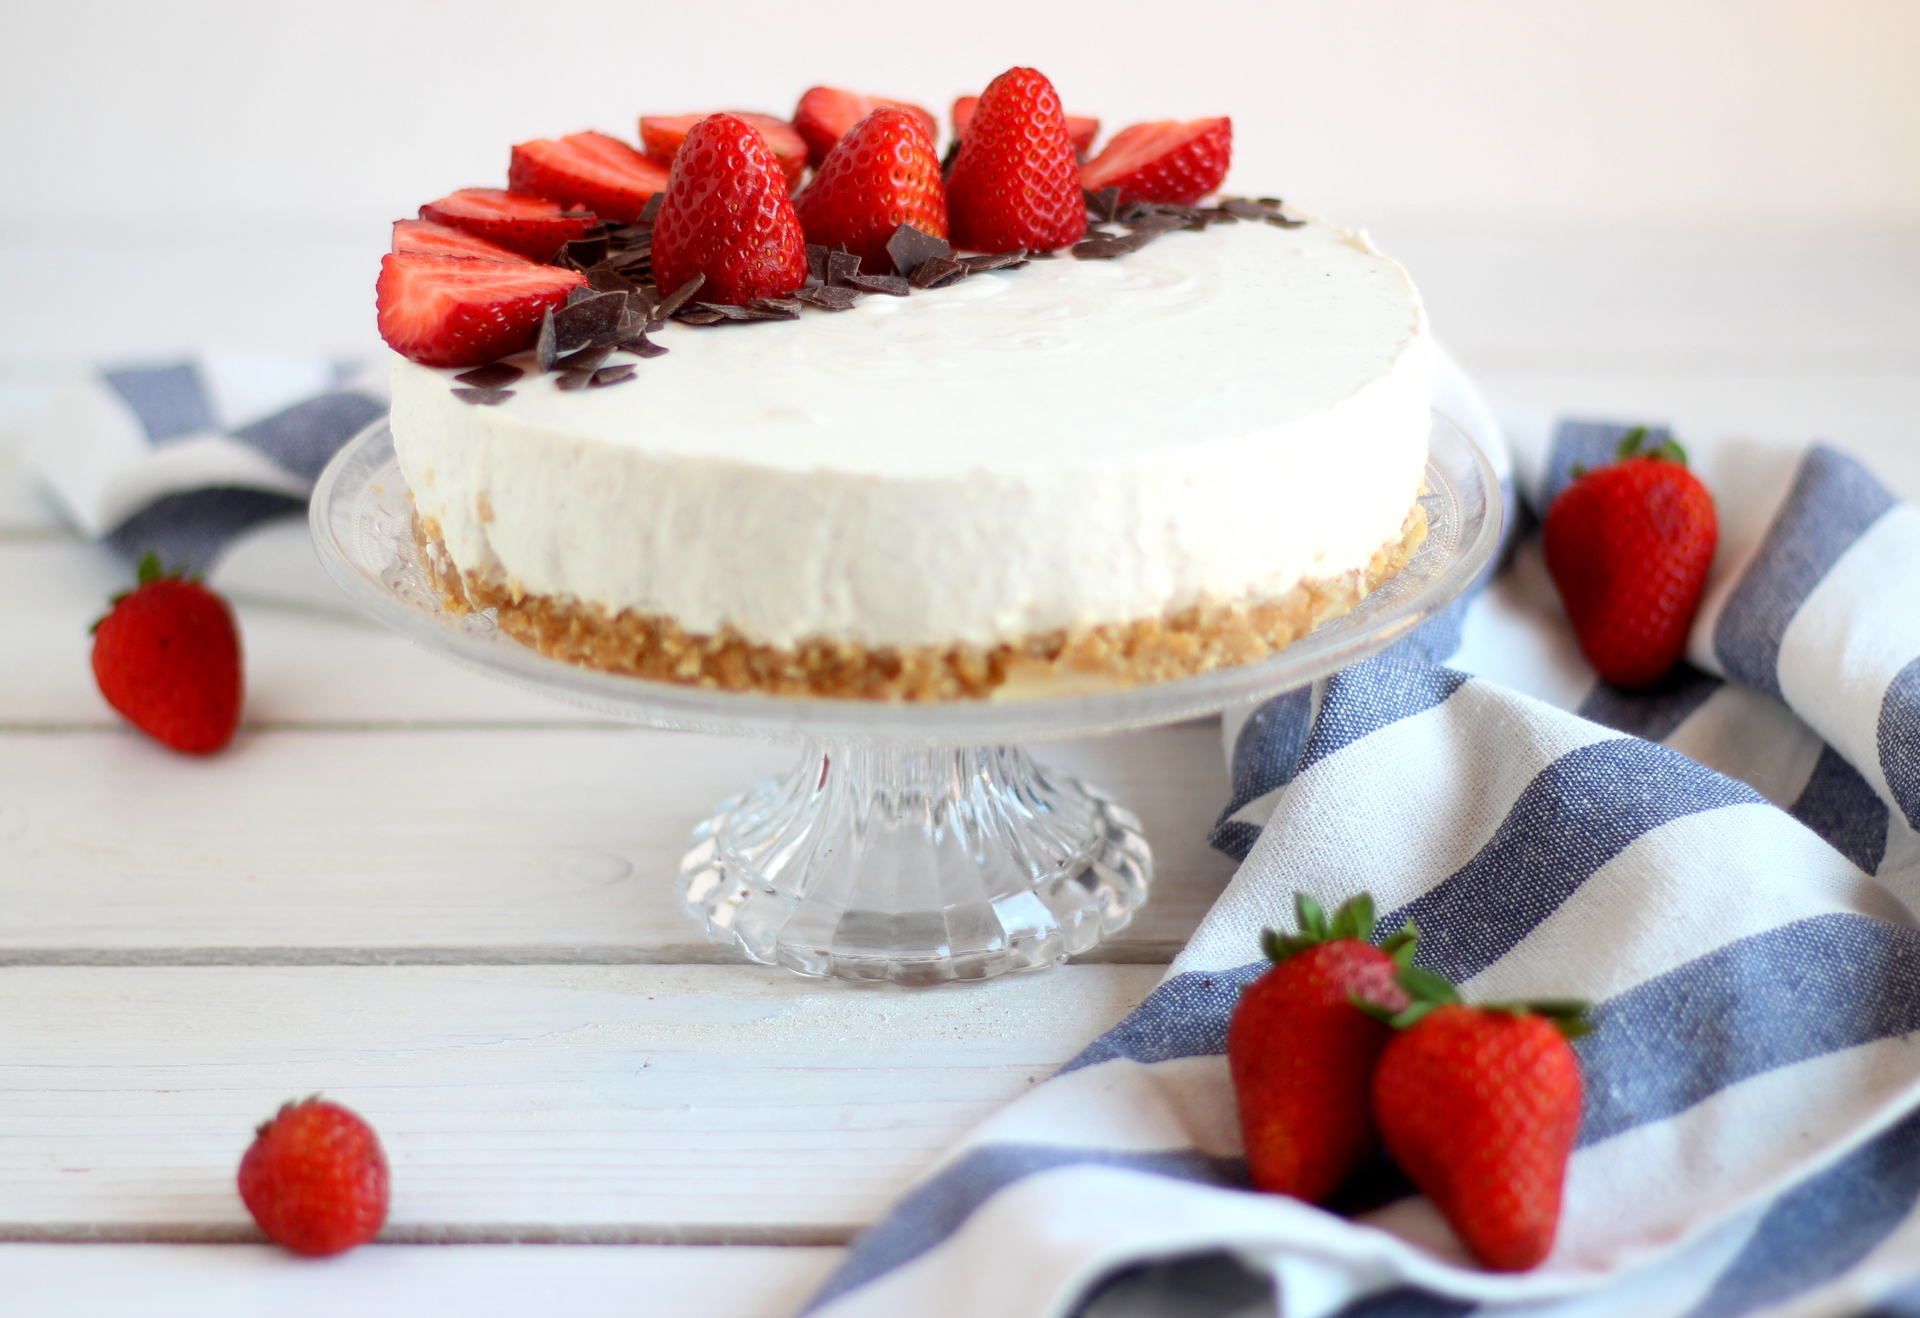 La Cucina Italiana Cheesecake Alle Fragole Cheesecake Allo Yogurt Greco Con Panna E Fragole